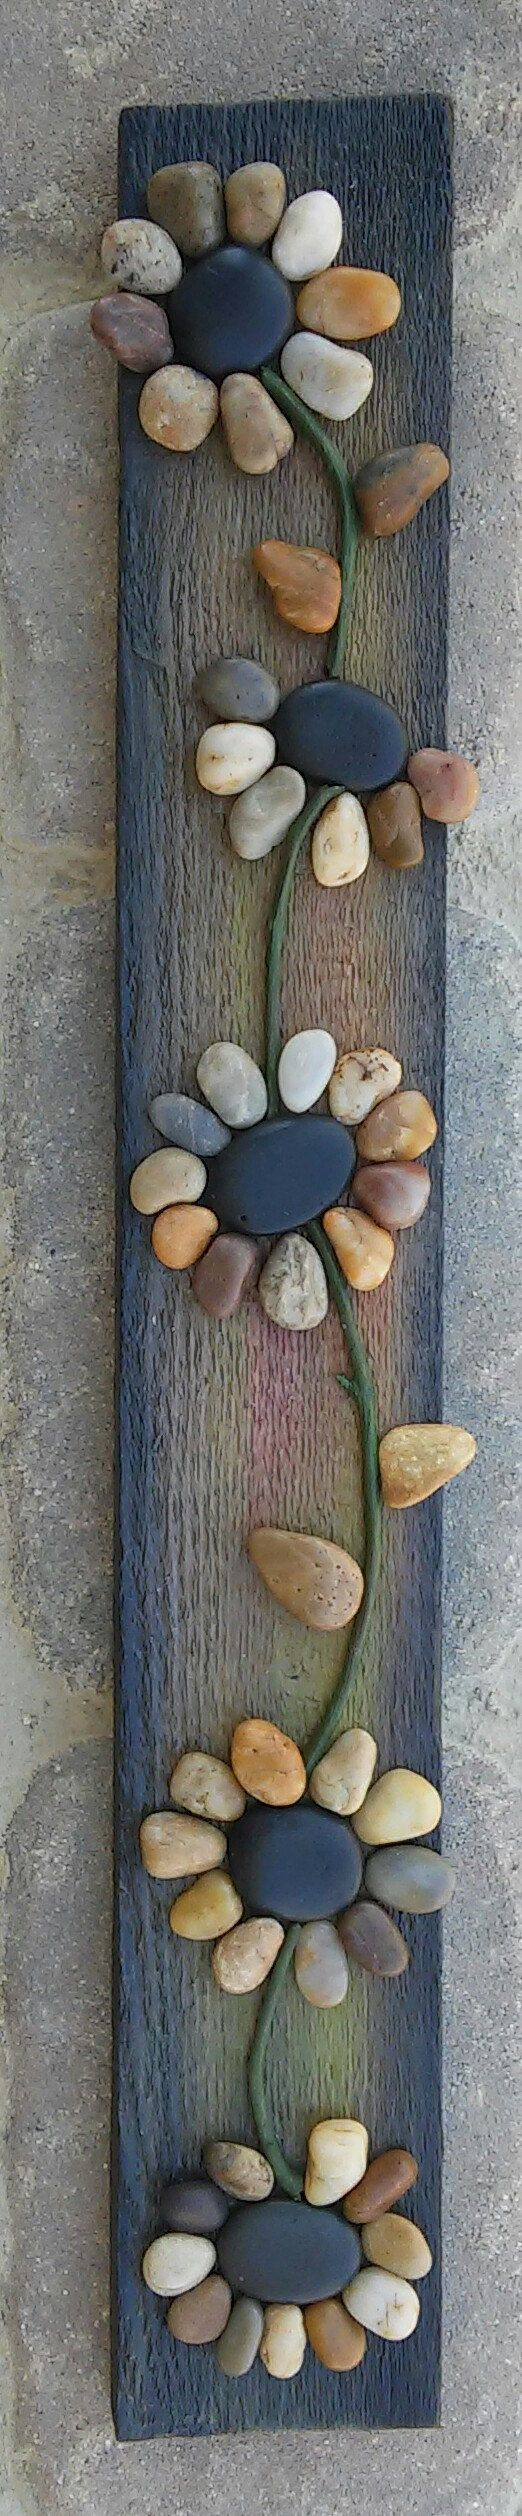 Pebble Art / Rock Art and a string of flowers (all natural materials incl. reclaimed wood, pebbles, twigs), Approx 24 inches, FREE SHIPPING